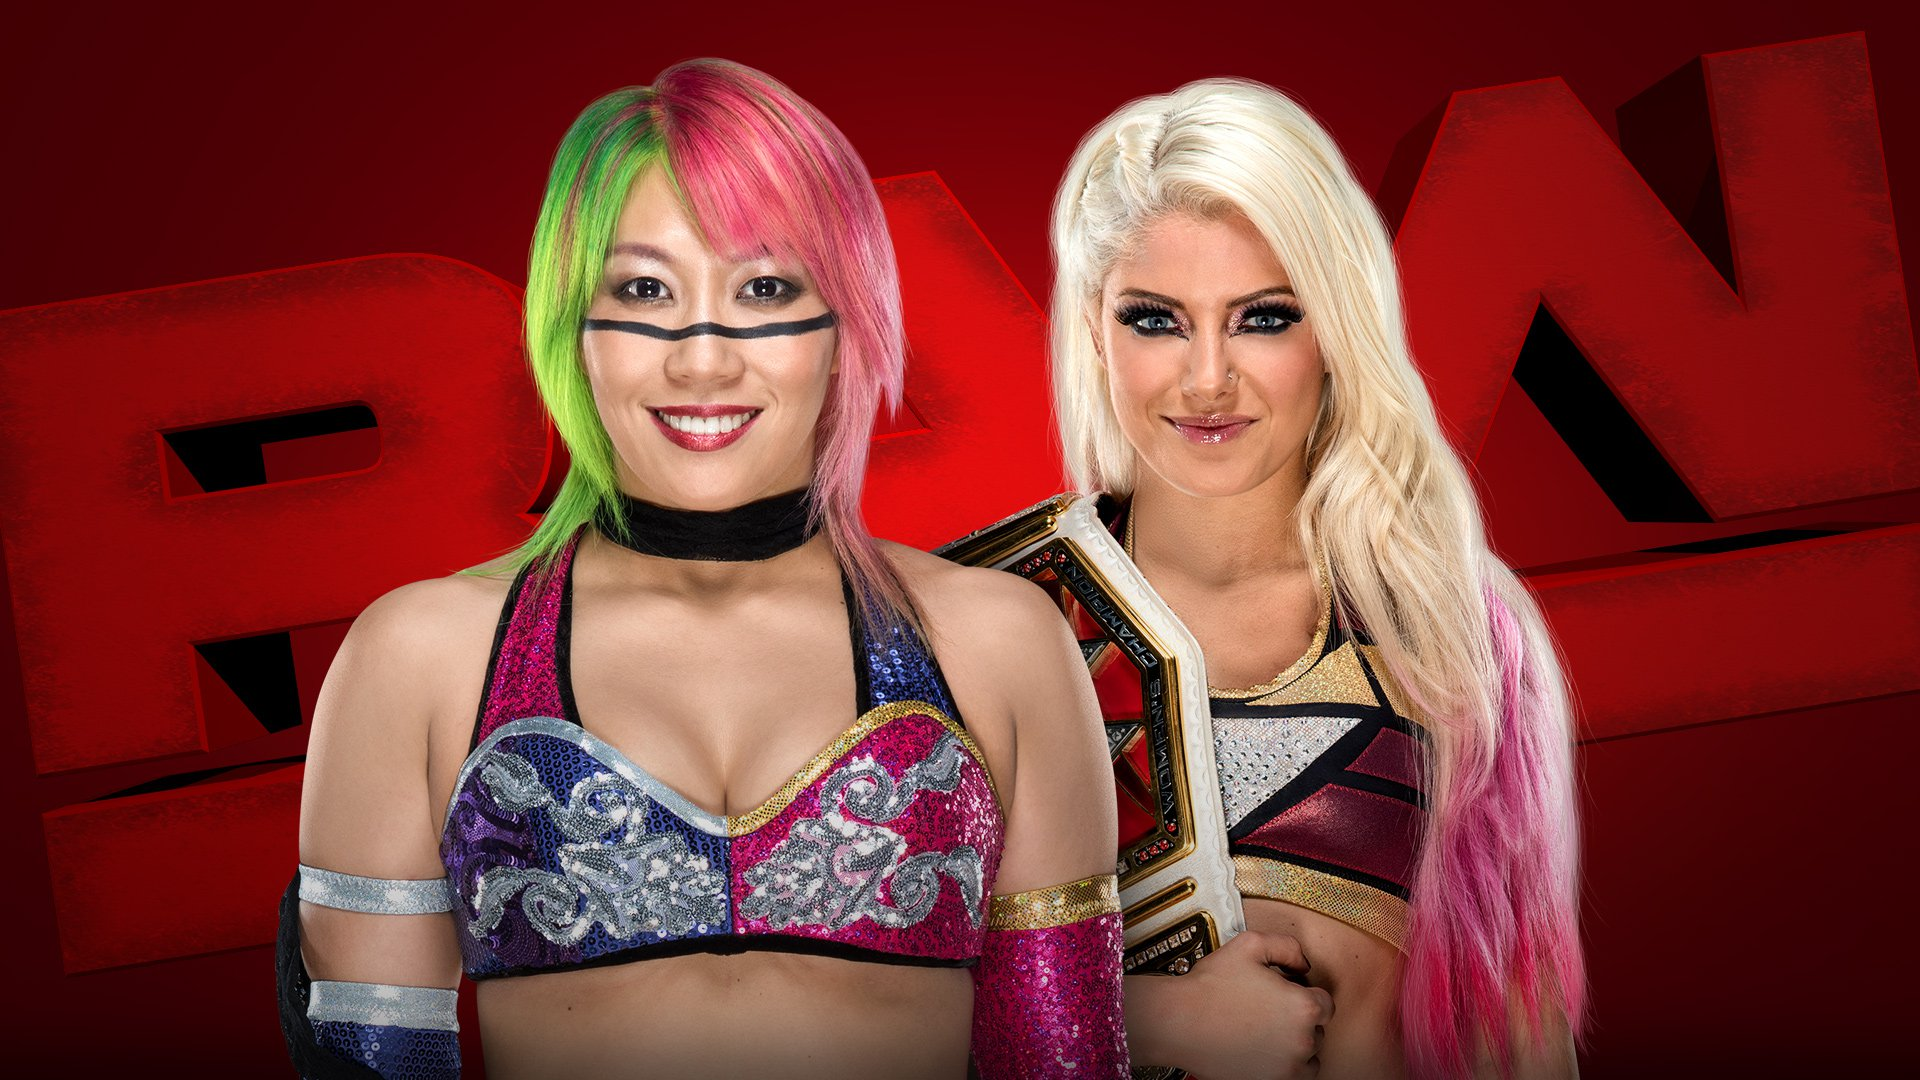 Asuka vs. Alexa Bliss